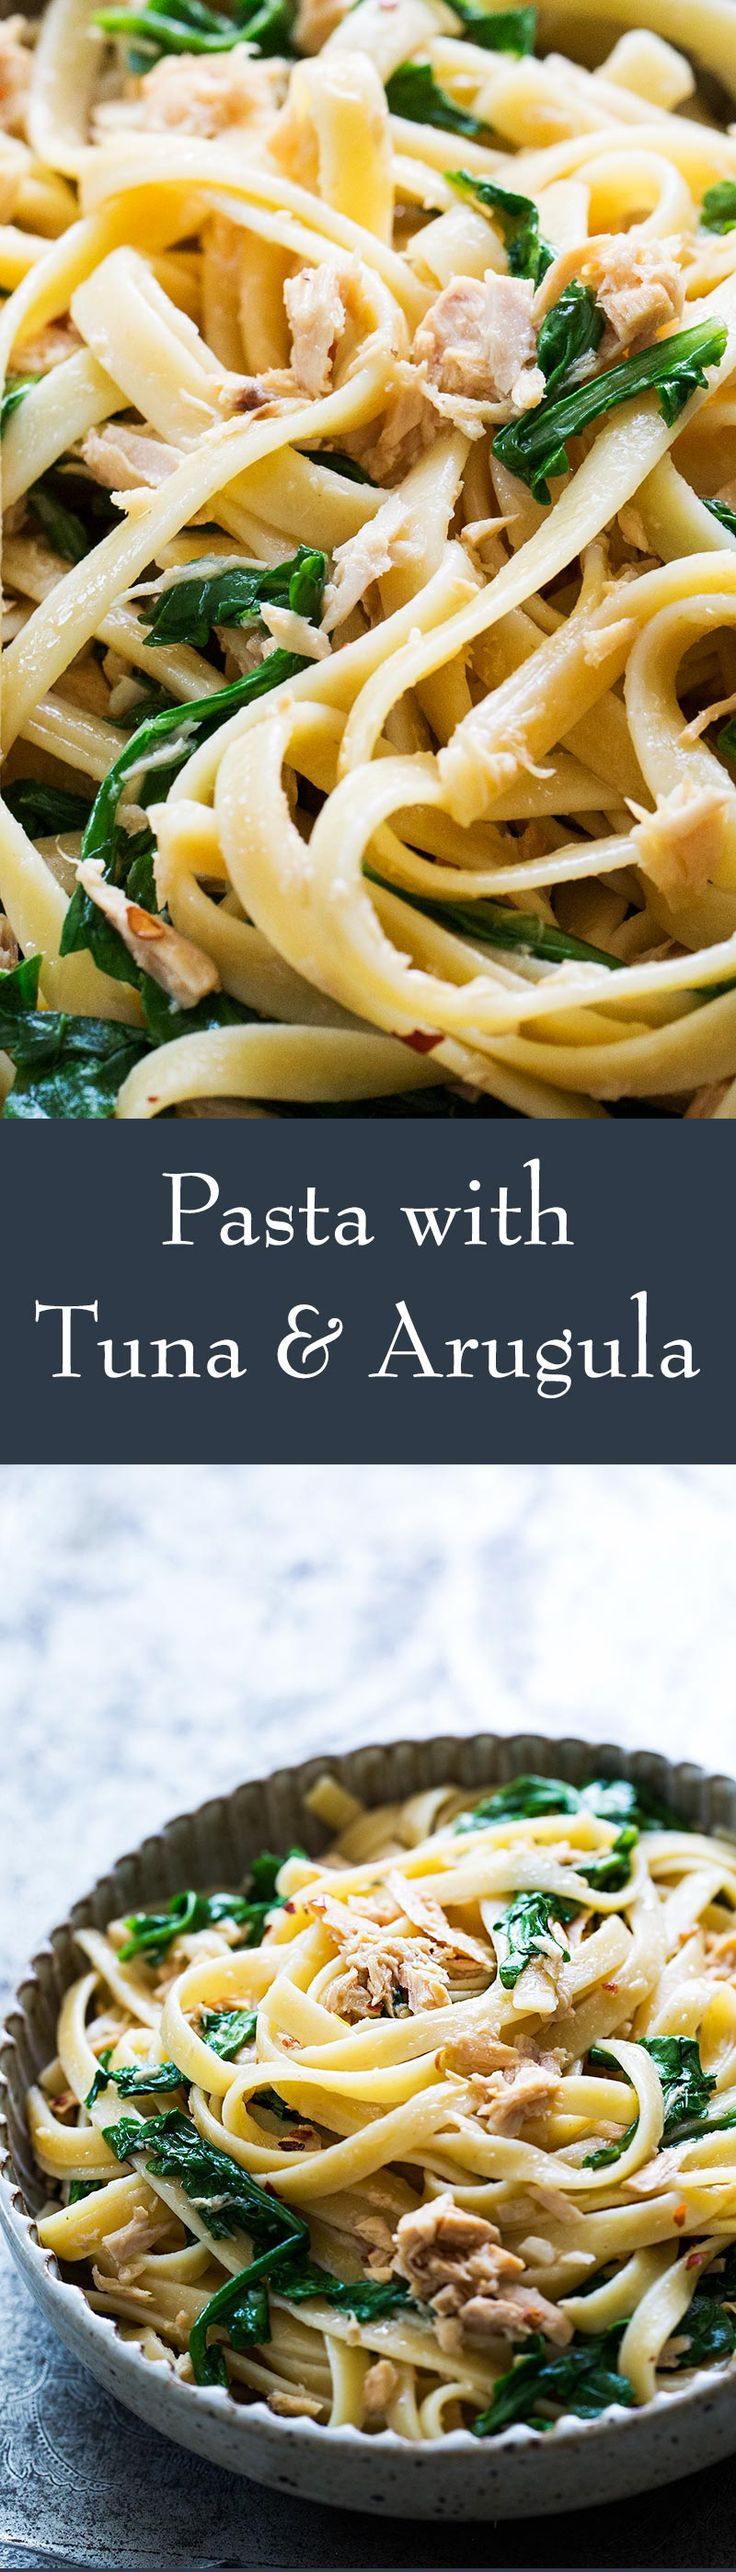 Best use of canned tuna ever! Quick and easy, takes only 25-minutes start to finish. Perfect midweek meal. On SimplyRecipes.com